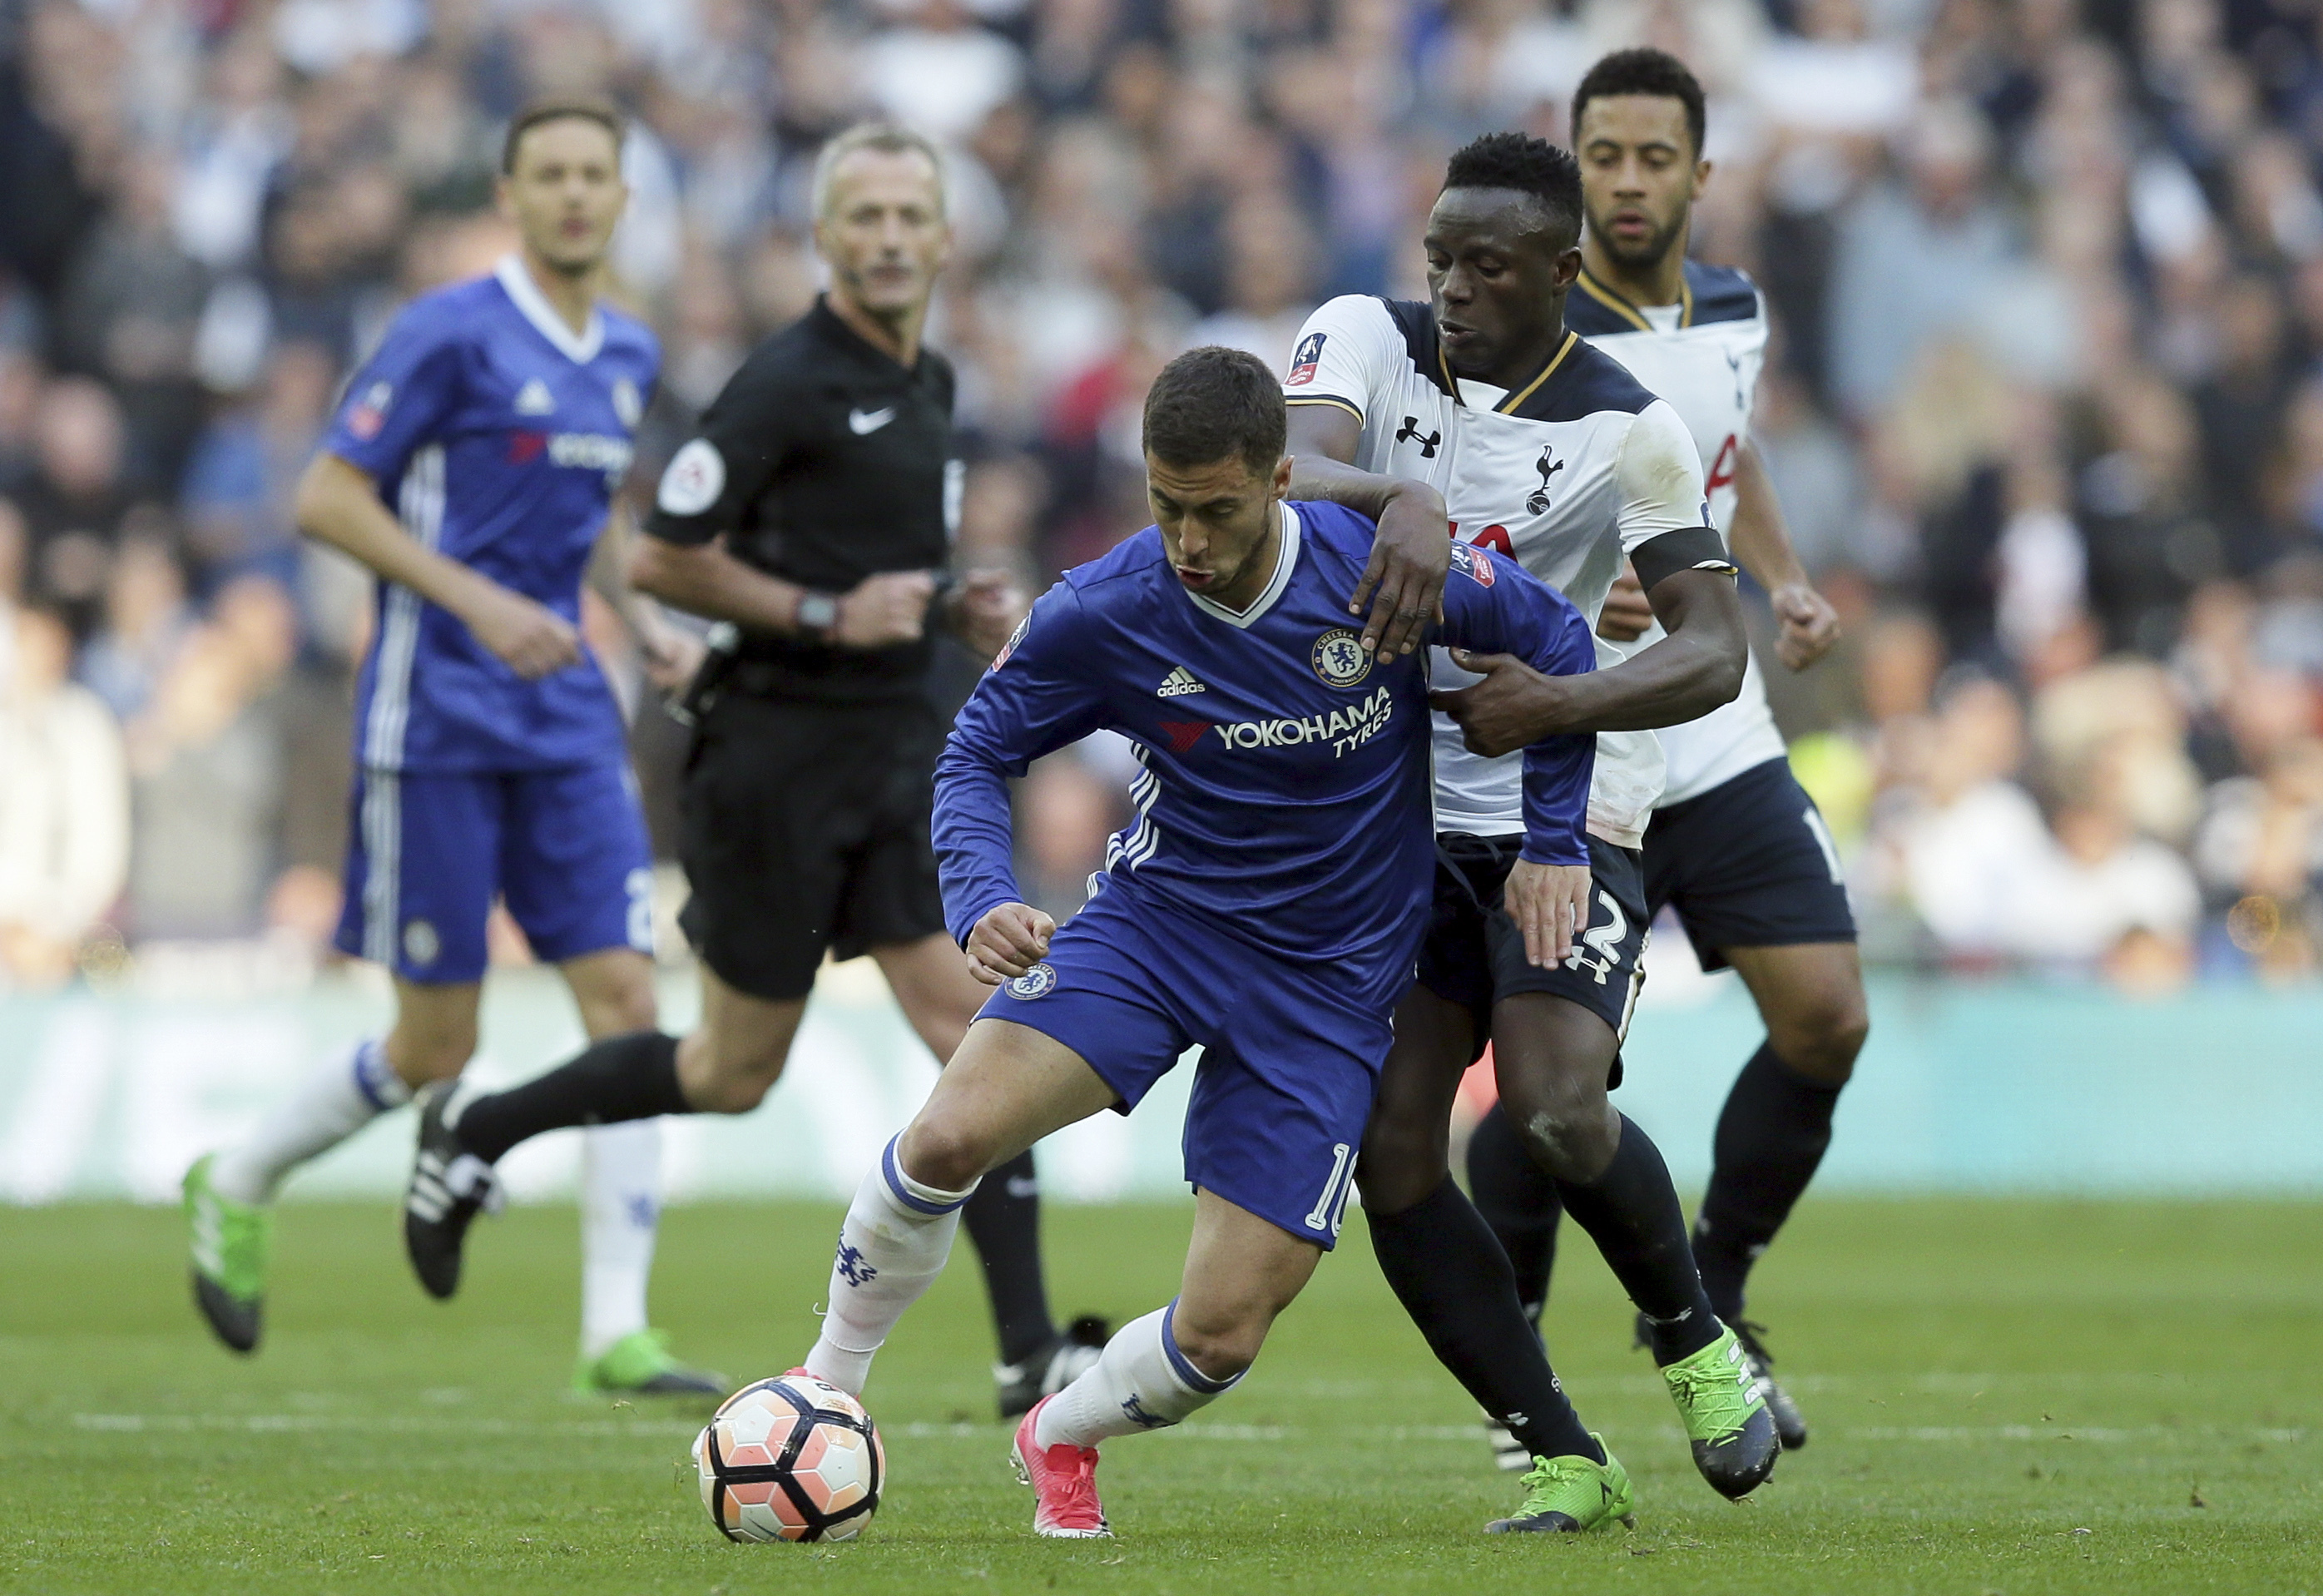 Chelsea's Eden Hazard vies for the ball with Tottenham's Victor Wanyama, center right, during their English FA Cup semifinal match at Wembley stadium in London, Saturday, April 22. (AP Photo/Tim Ireland)